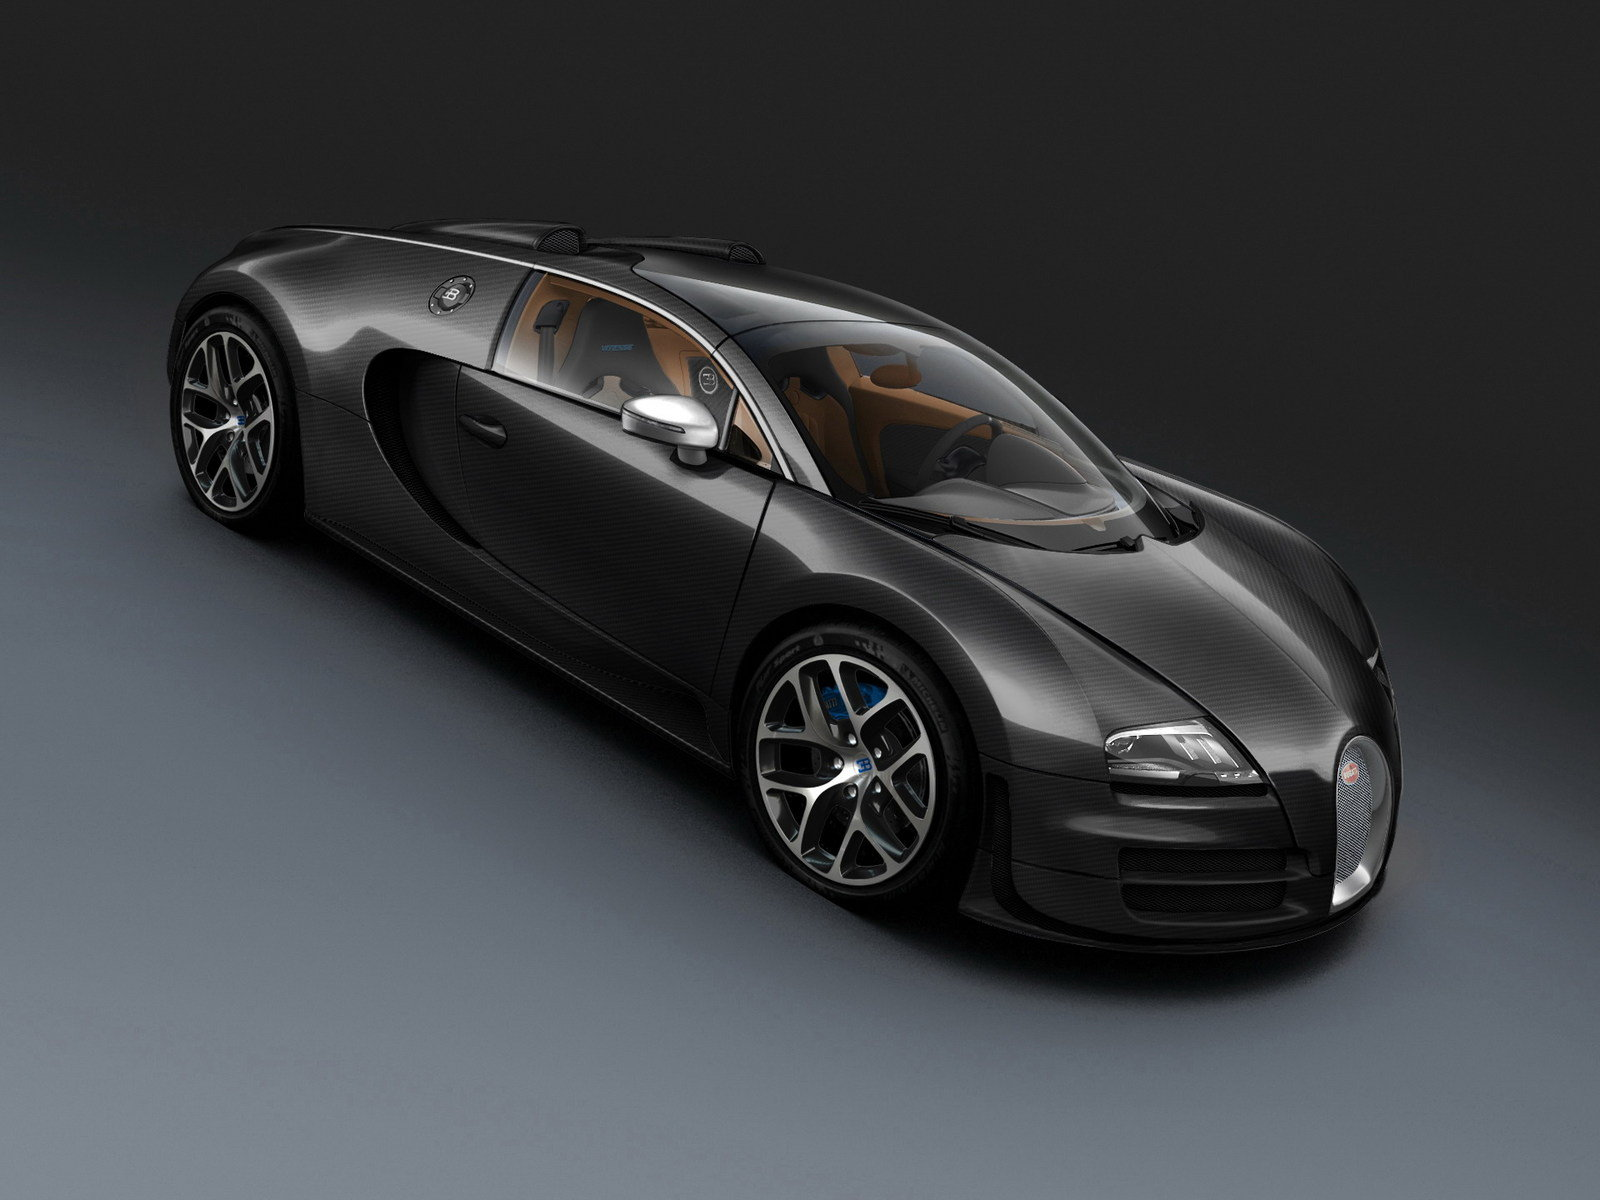 2013 bugatti veyron 16 4 grand sport vitesse black carbon review top speed. Black Bedroom Furniture Sets. Home Design Ideas